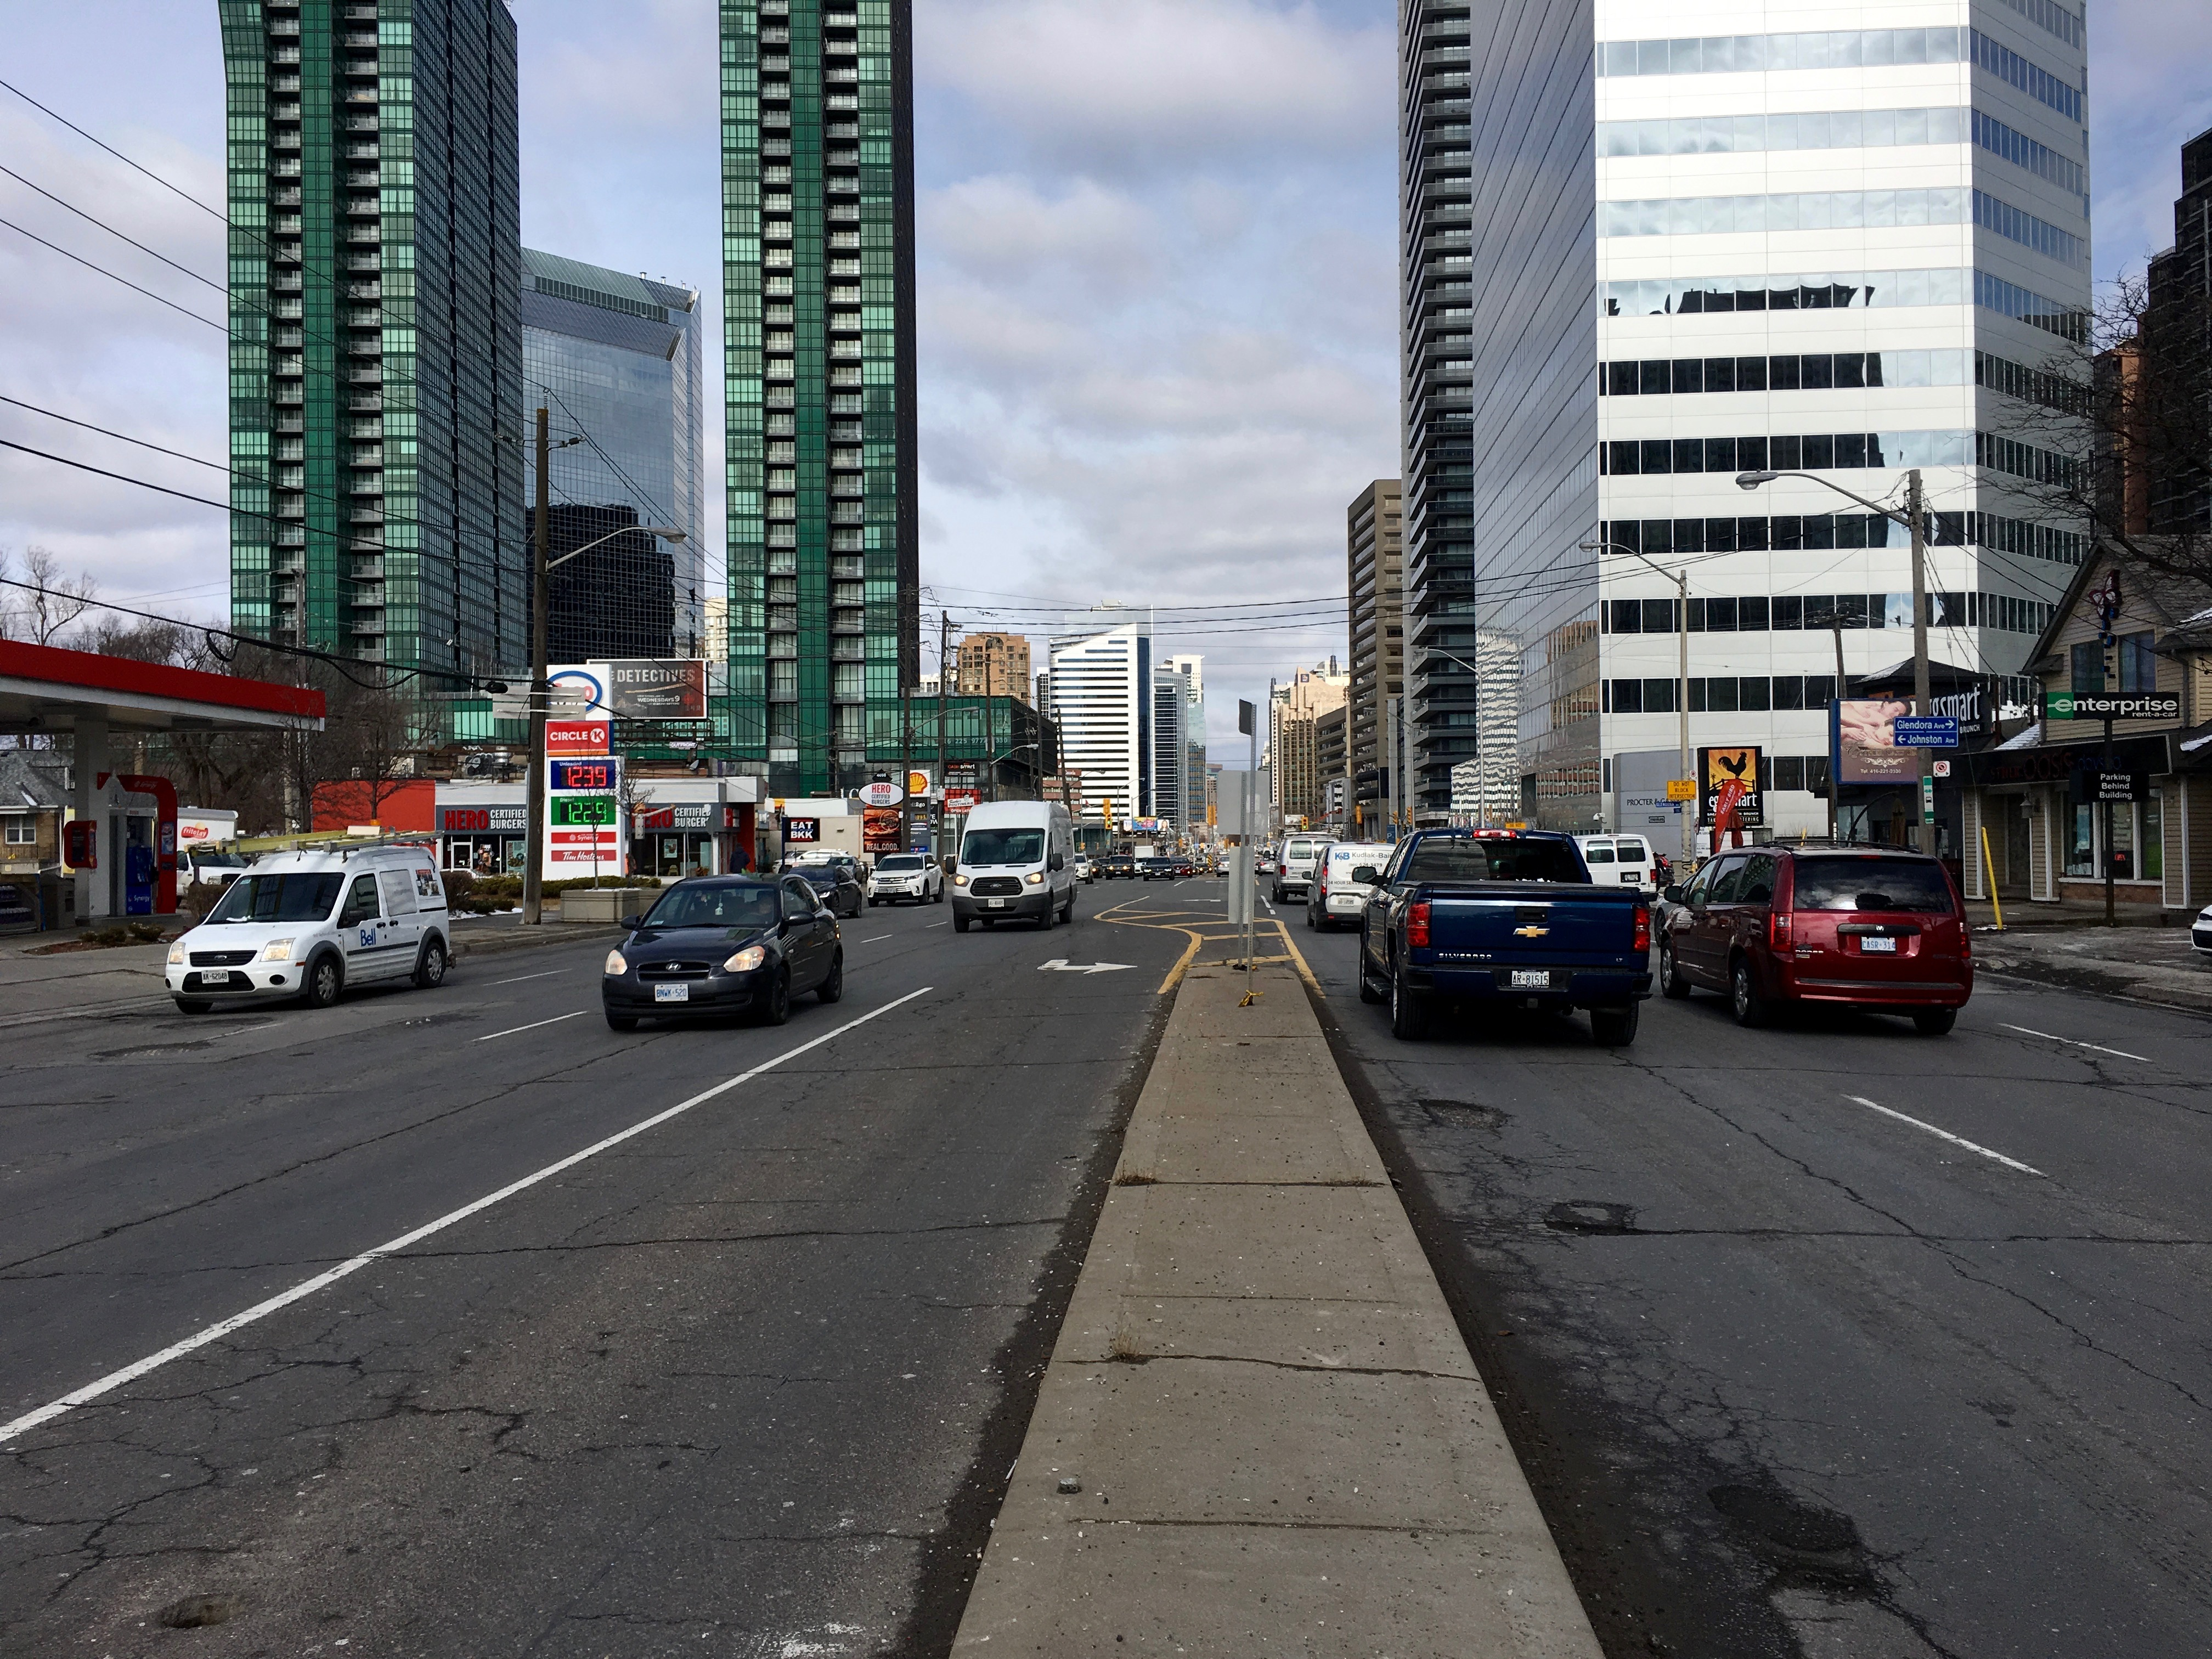 11:28 a.m., March 2, 2018. Facing north on Yonge Street at Avondale Avenue.